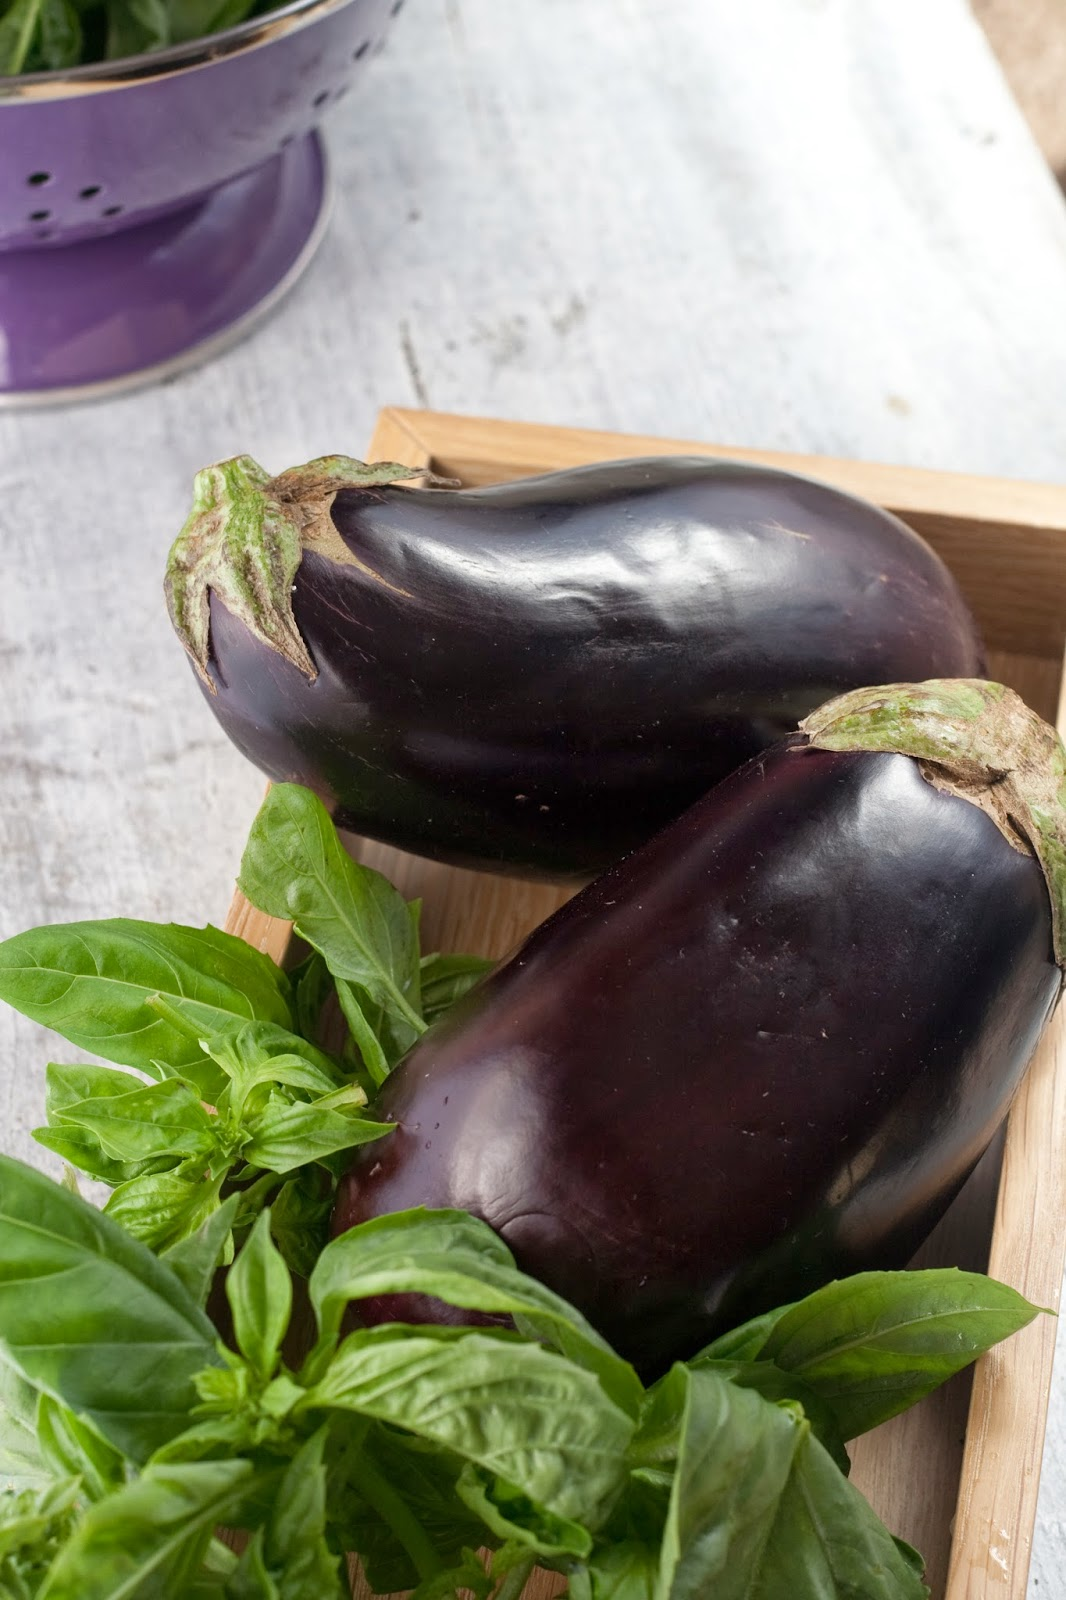 eggplant photo copyright ©karina allrich